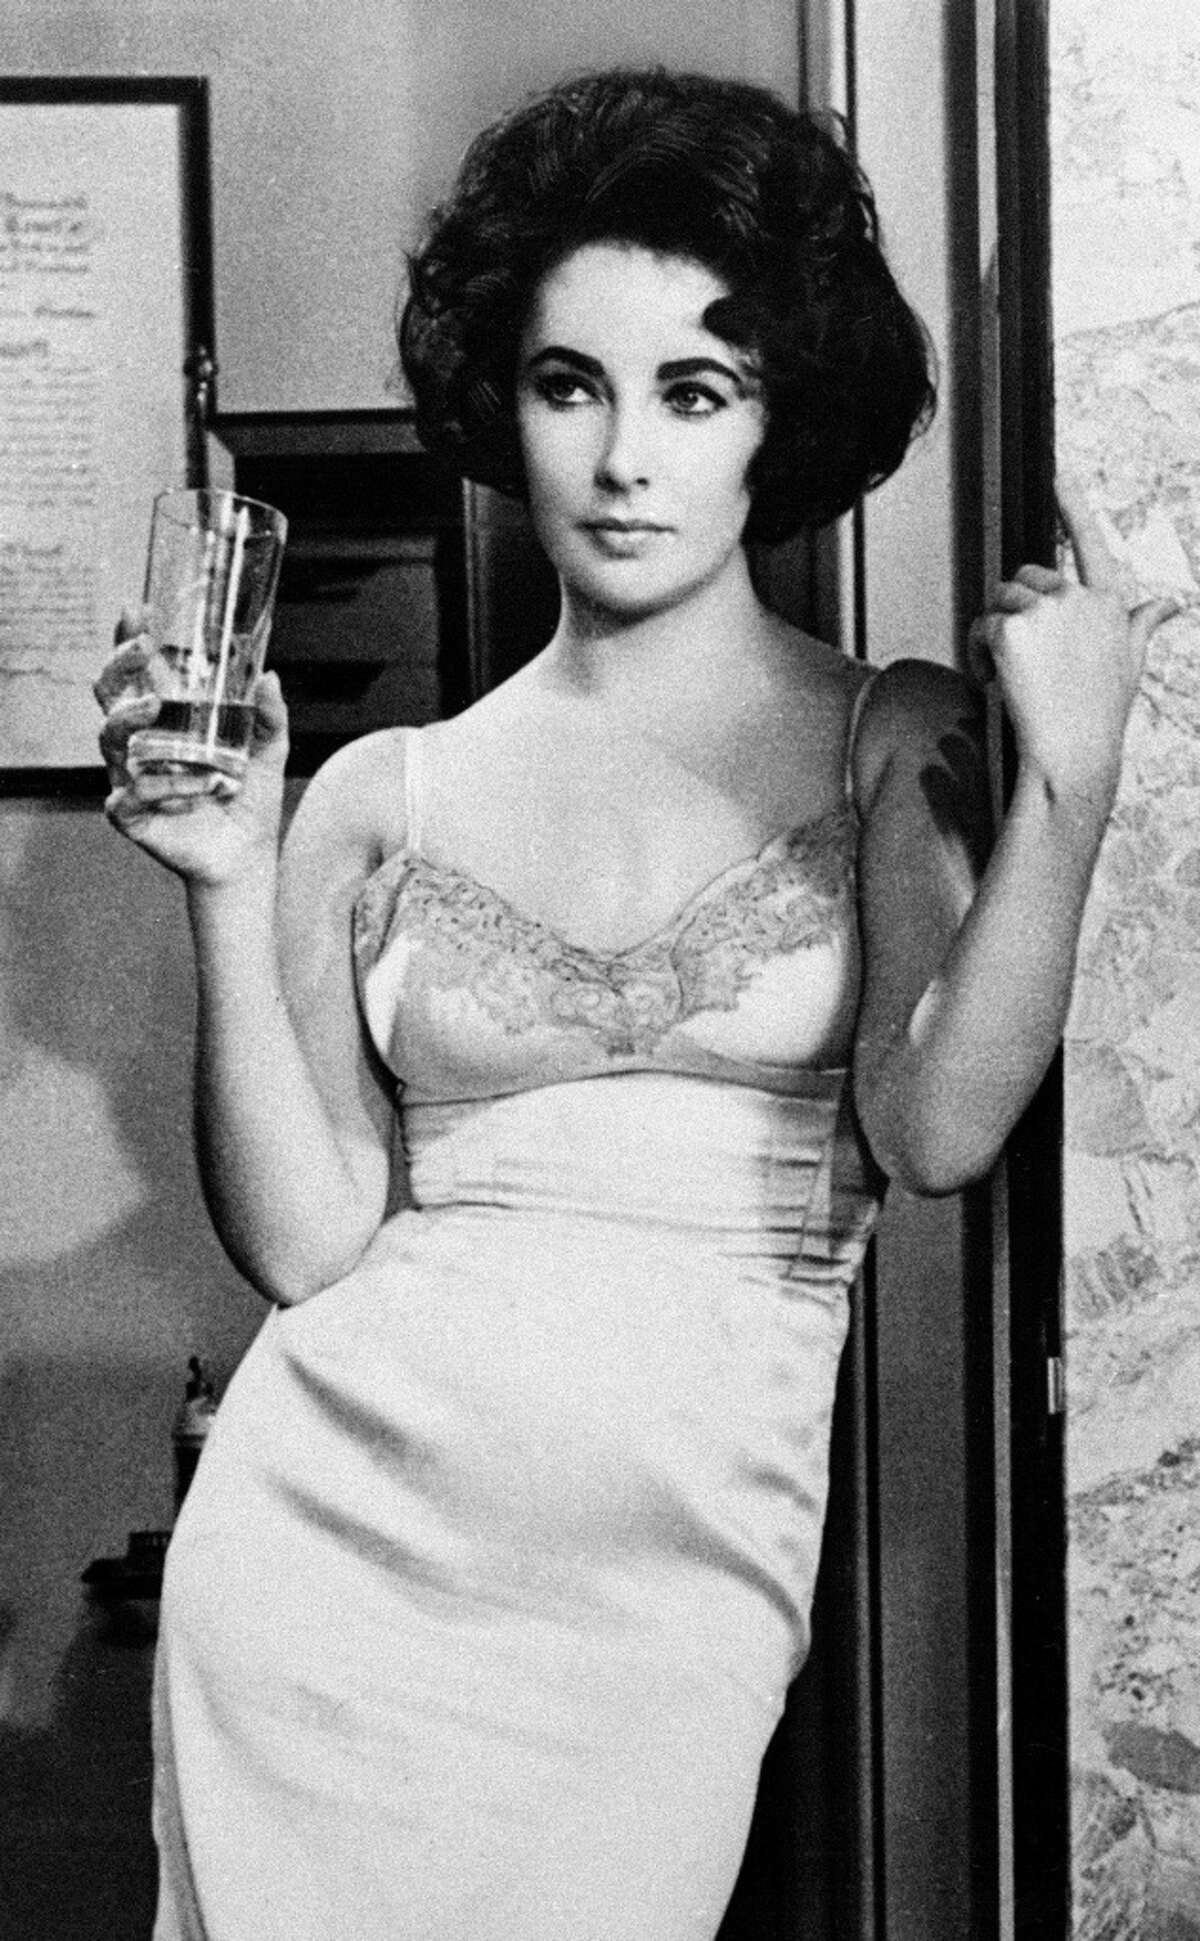 """""""Mama, face it. I was the slut of all time."""" - Gloria Wandrous """"BUtterfield 8,"""" 1960"""